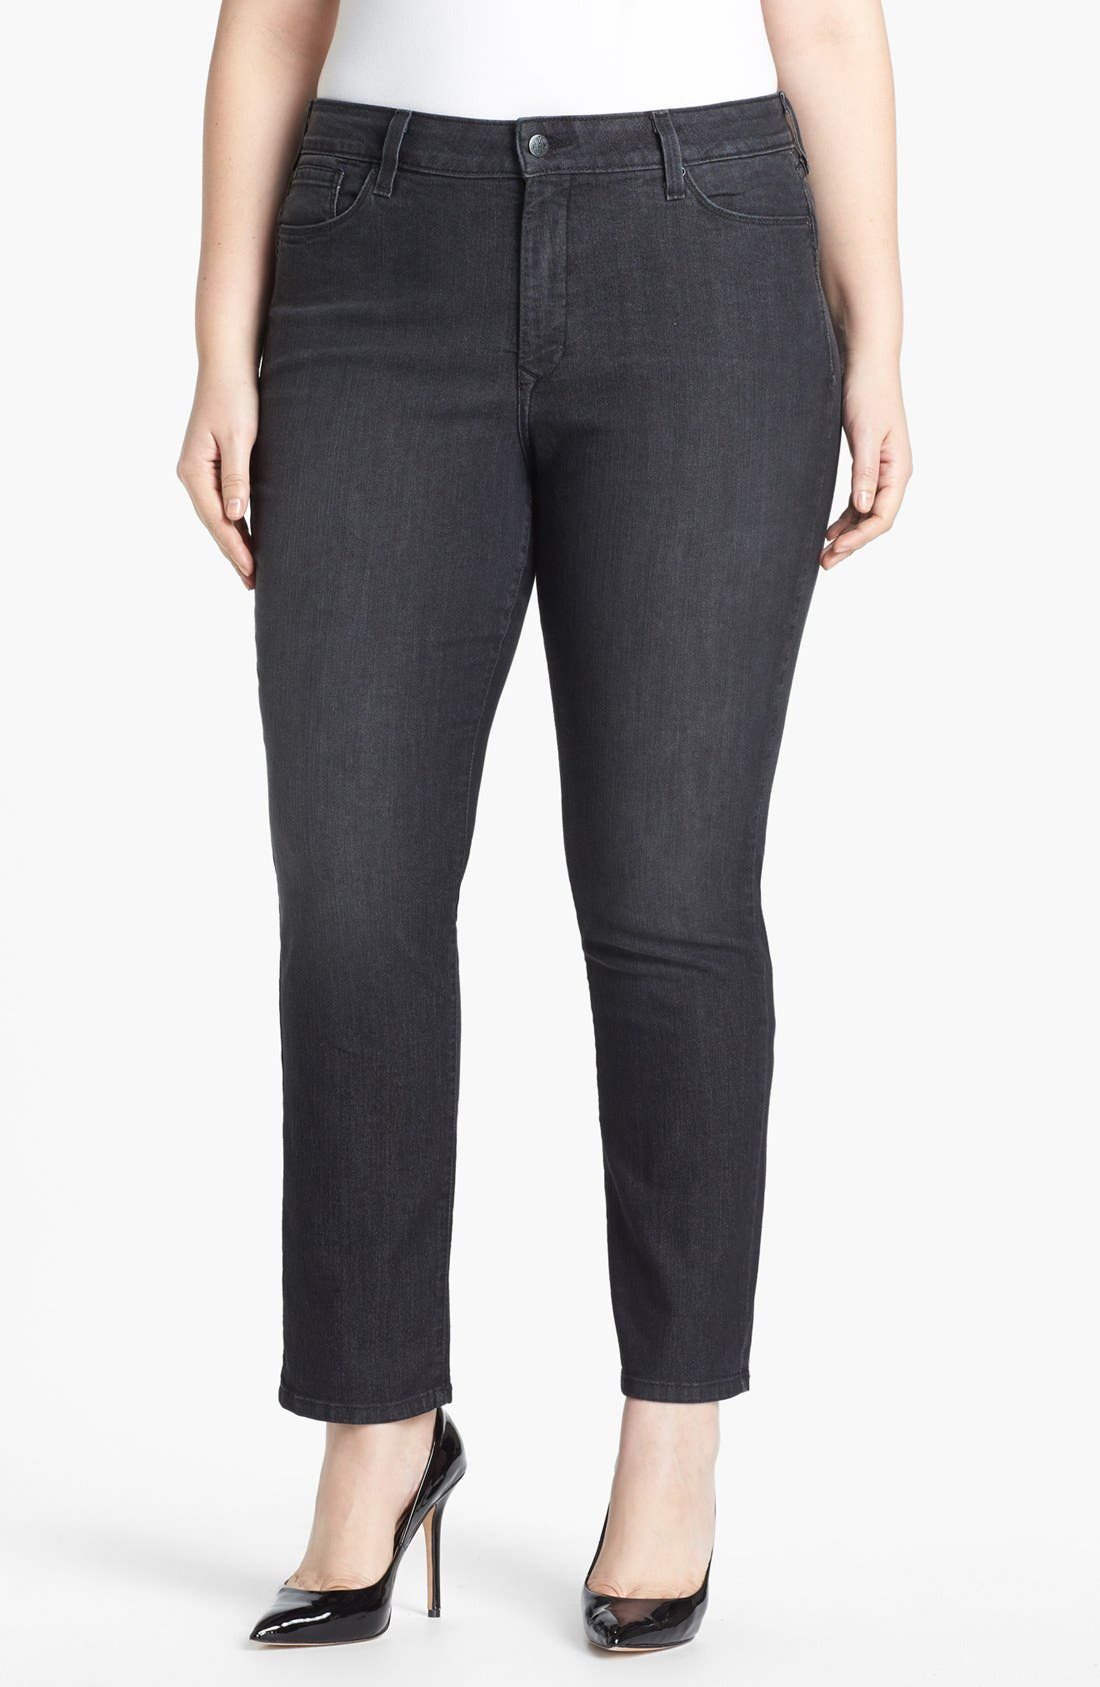 Main Image - NYDJ 'Sheri' Stretch Ankle Jeans (Onyx) (Plus Size)